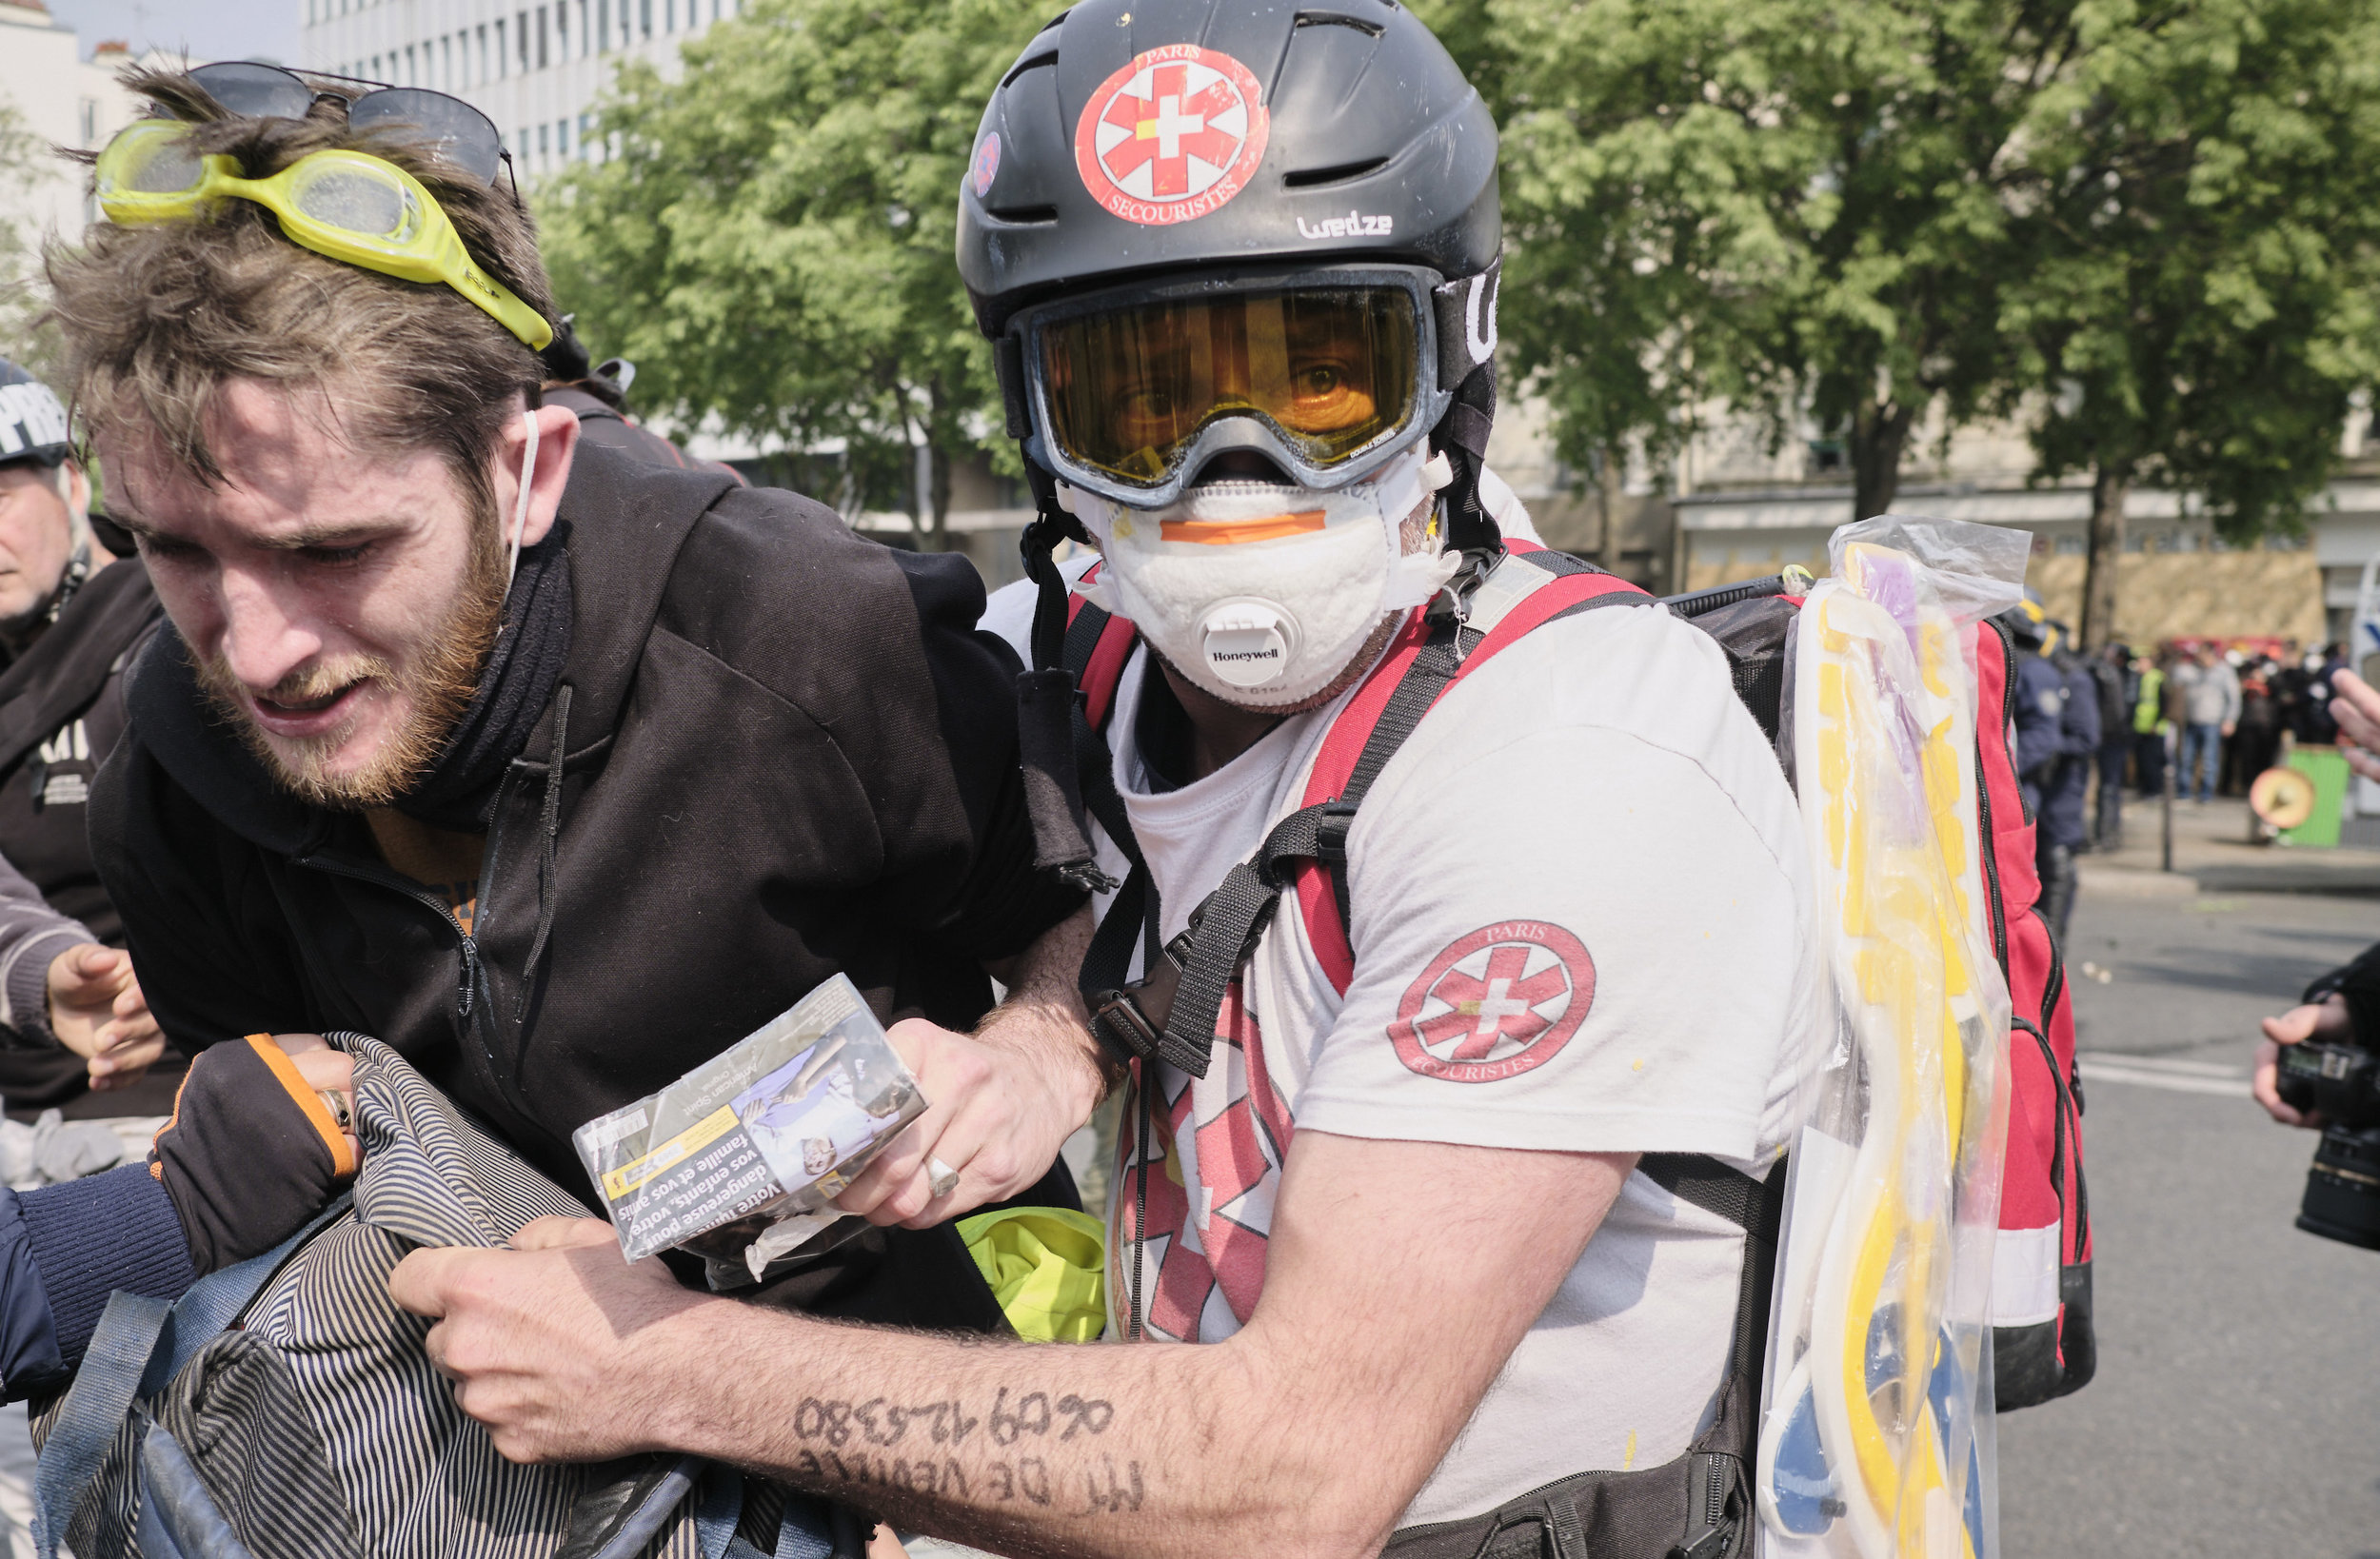 Civilian street medic taking an injured protest participant to safety during an attempt by the police to control the crowd using tear gas at The Avenue des Gobelins.